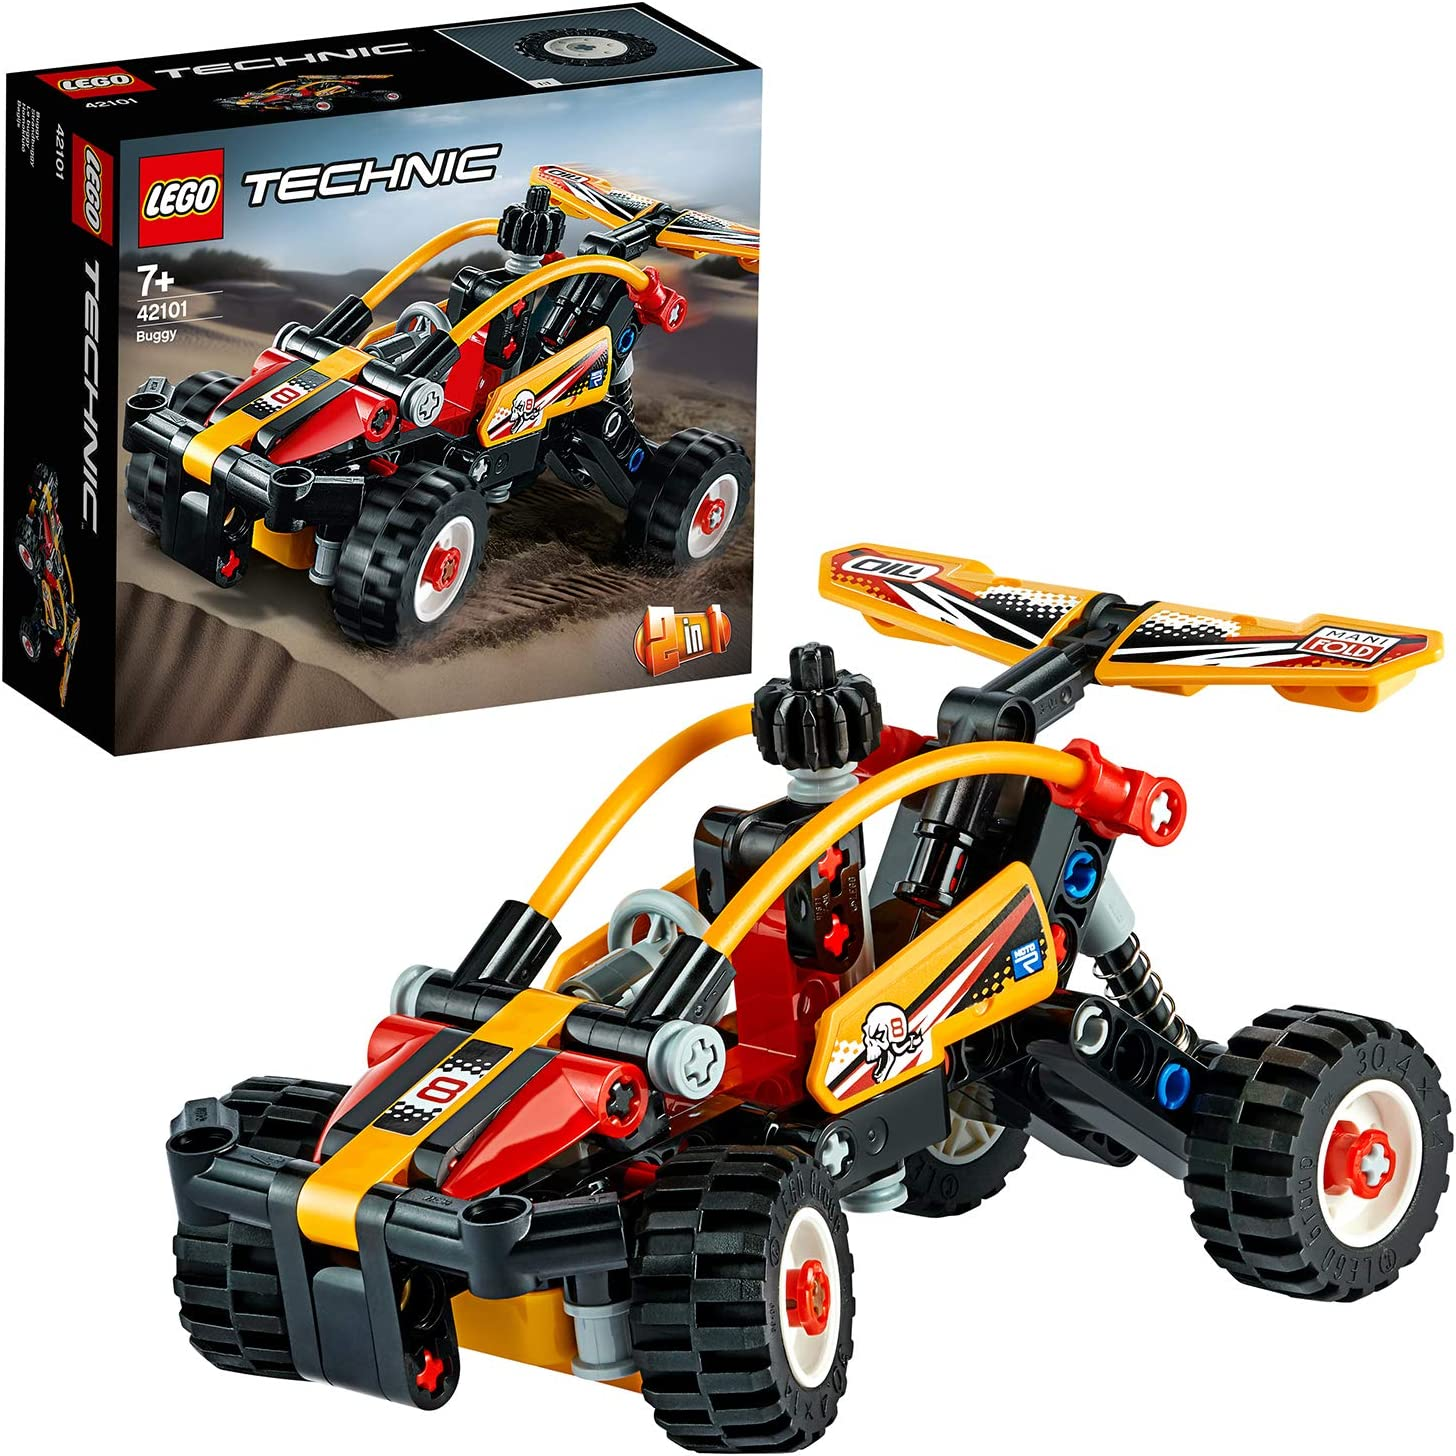 LEGO TECHNIC BUILDING INSTRUCTIONS COLLECTION PDF 2xDVD-R FREE SHIPPING